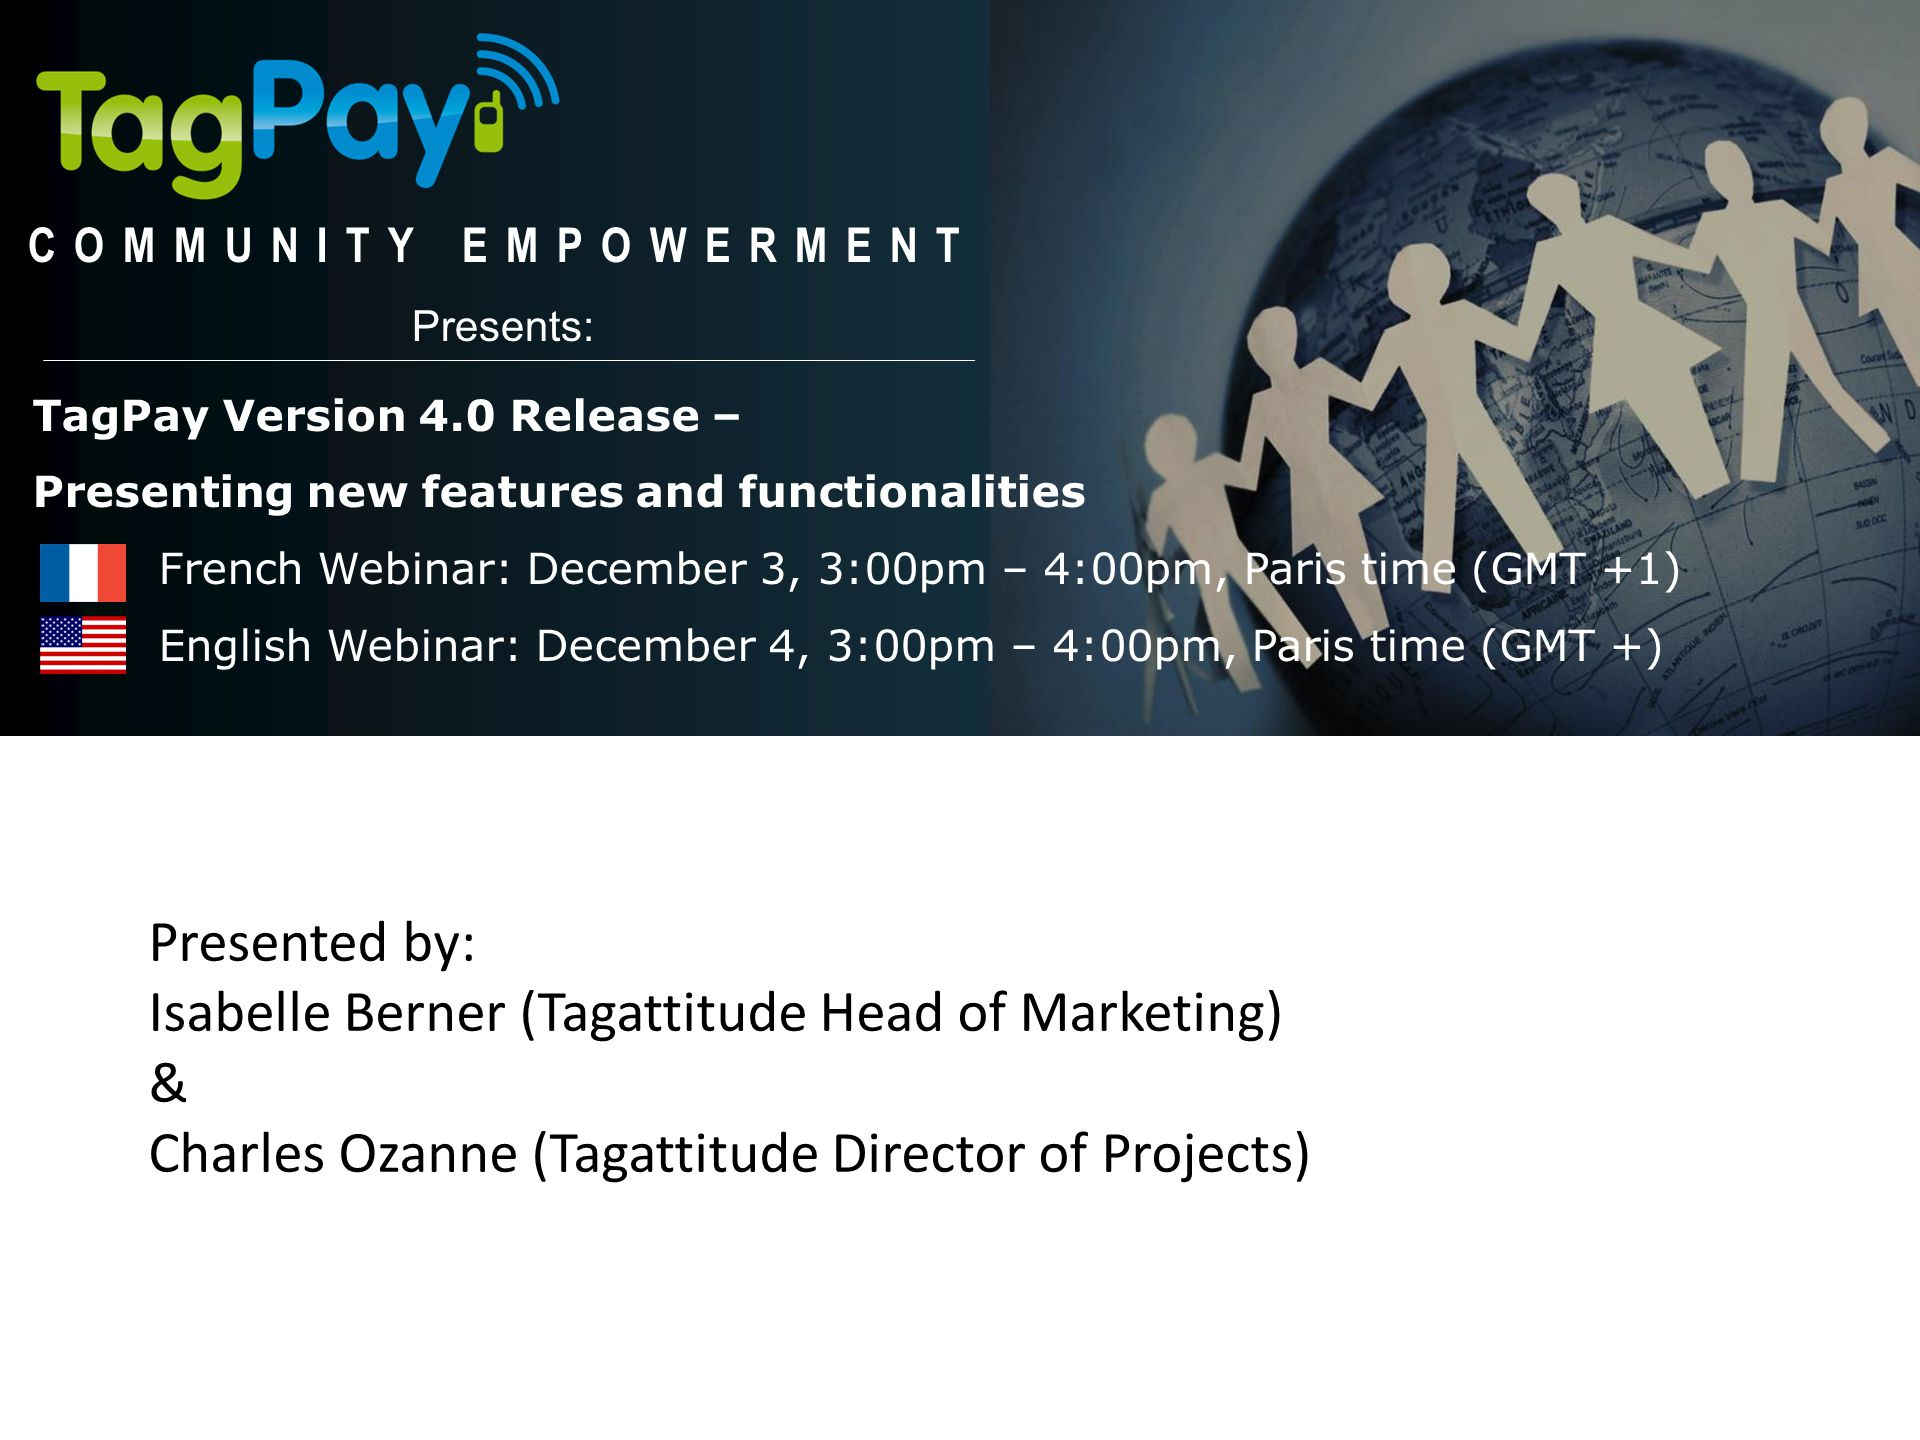 TagPay V4.0 Release: New Features and functionalities TagPay Version 4.0 Release: New Features and Functionalities PARTNER WEBINAR December 2013  Introduction  Presentation of TagPay Version 4.0  Q&A and Wrap-up Submit questions or comments via private chat throughout the presentation and Tagattitude will address questions and comments submitted during the Q&A session at the end.